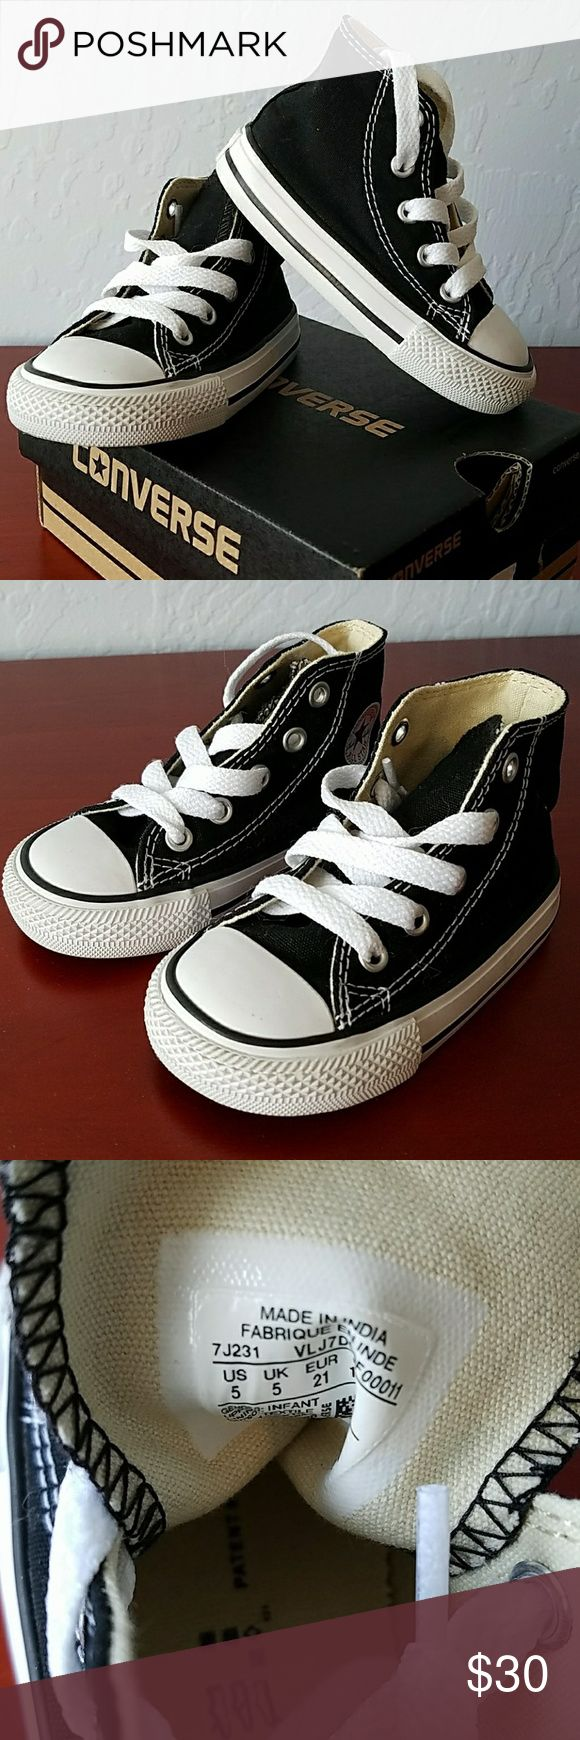 New toddler converse NIB classic black and white chucks for toddlers. My little guy outgrew these before he could wear them  Size 5 *Firm on Price No offers please Converse Shoes Sneakers